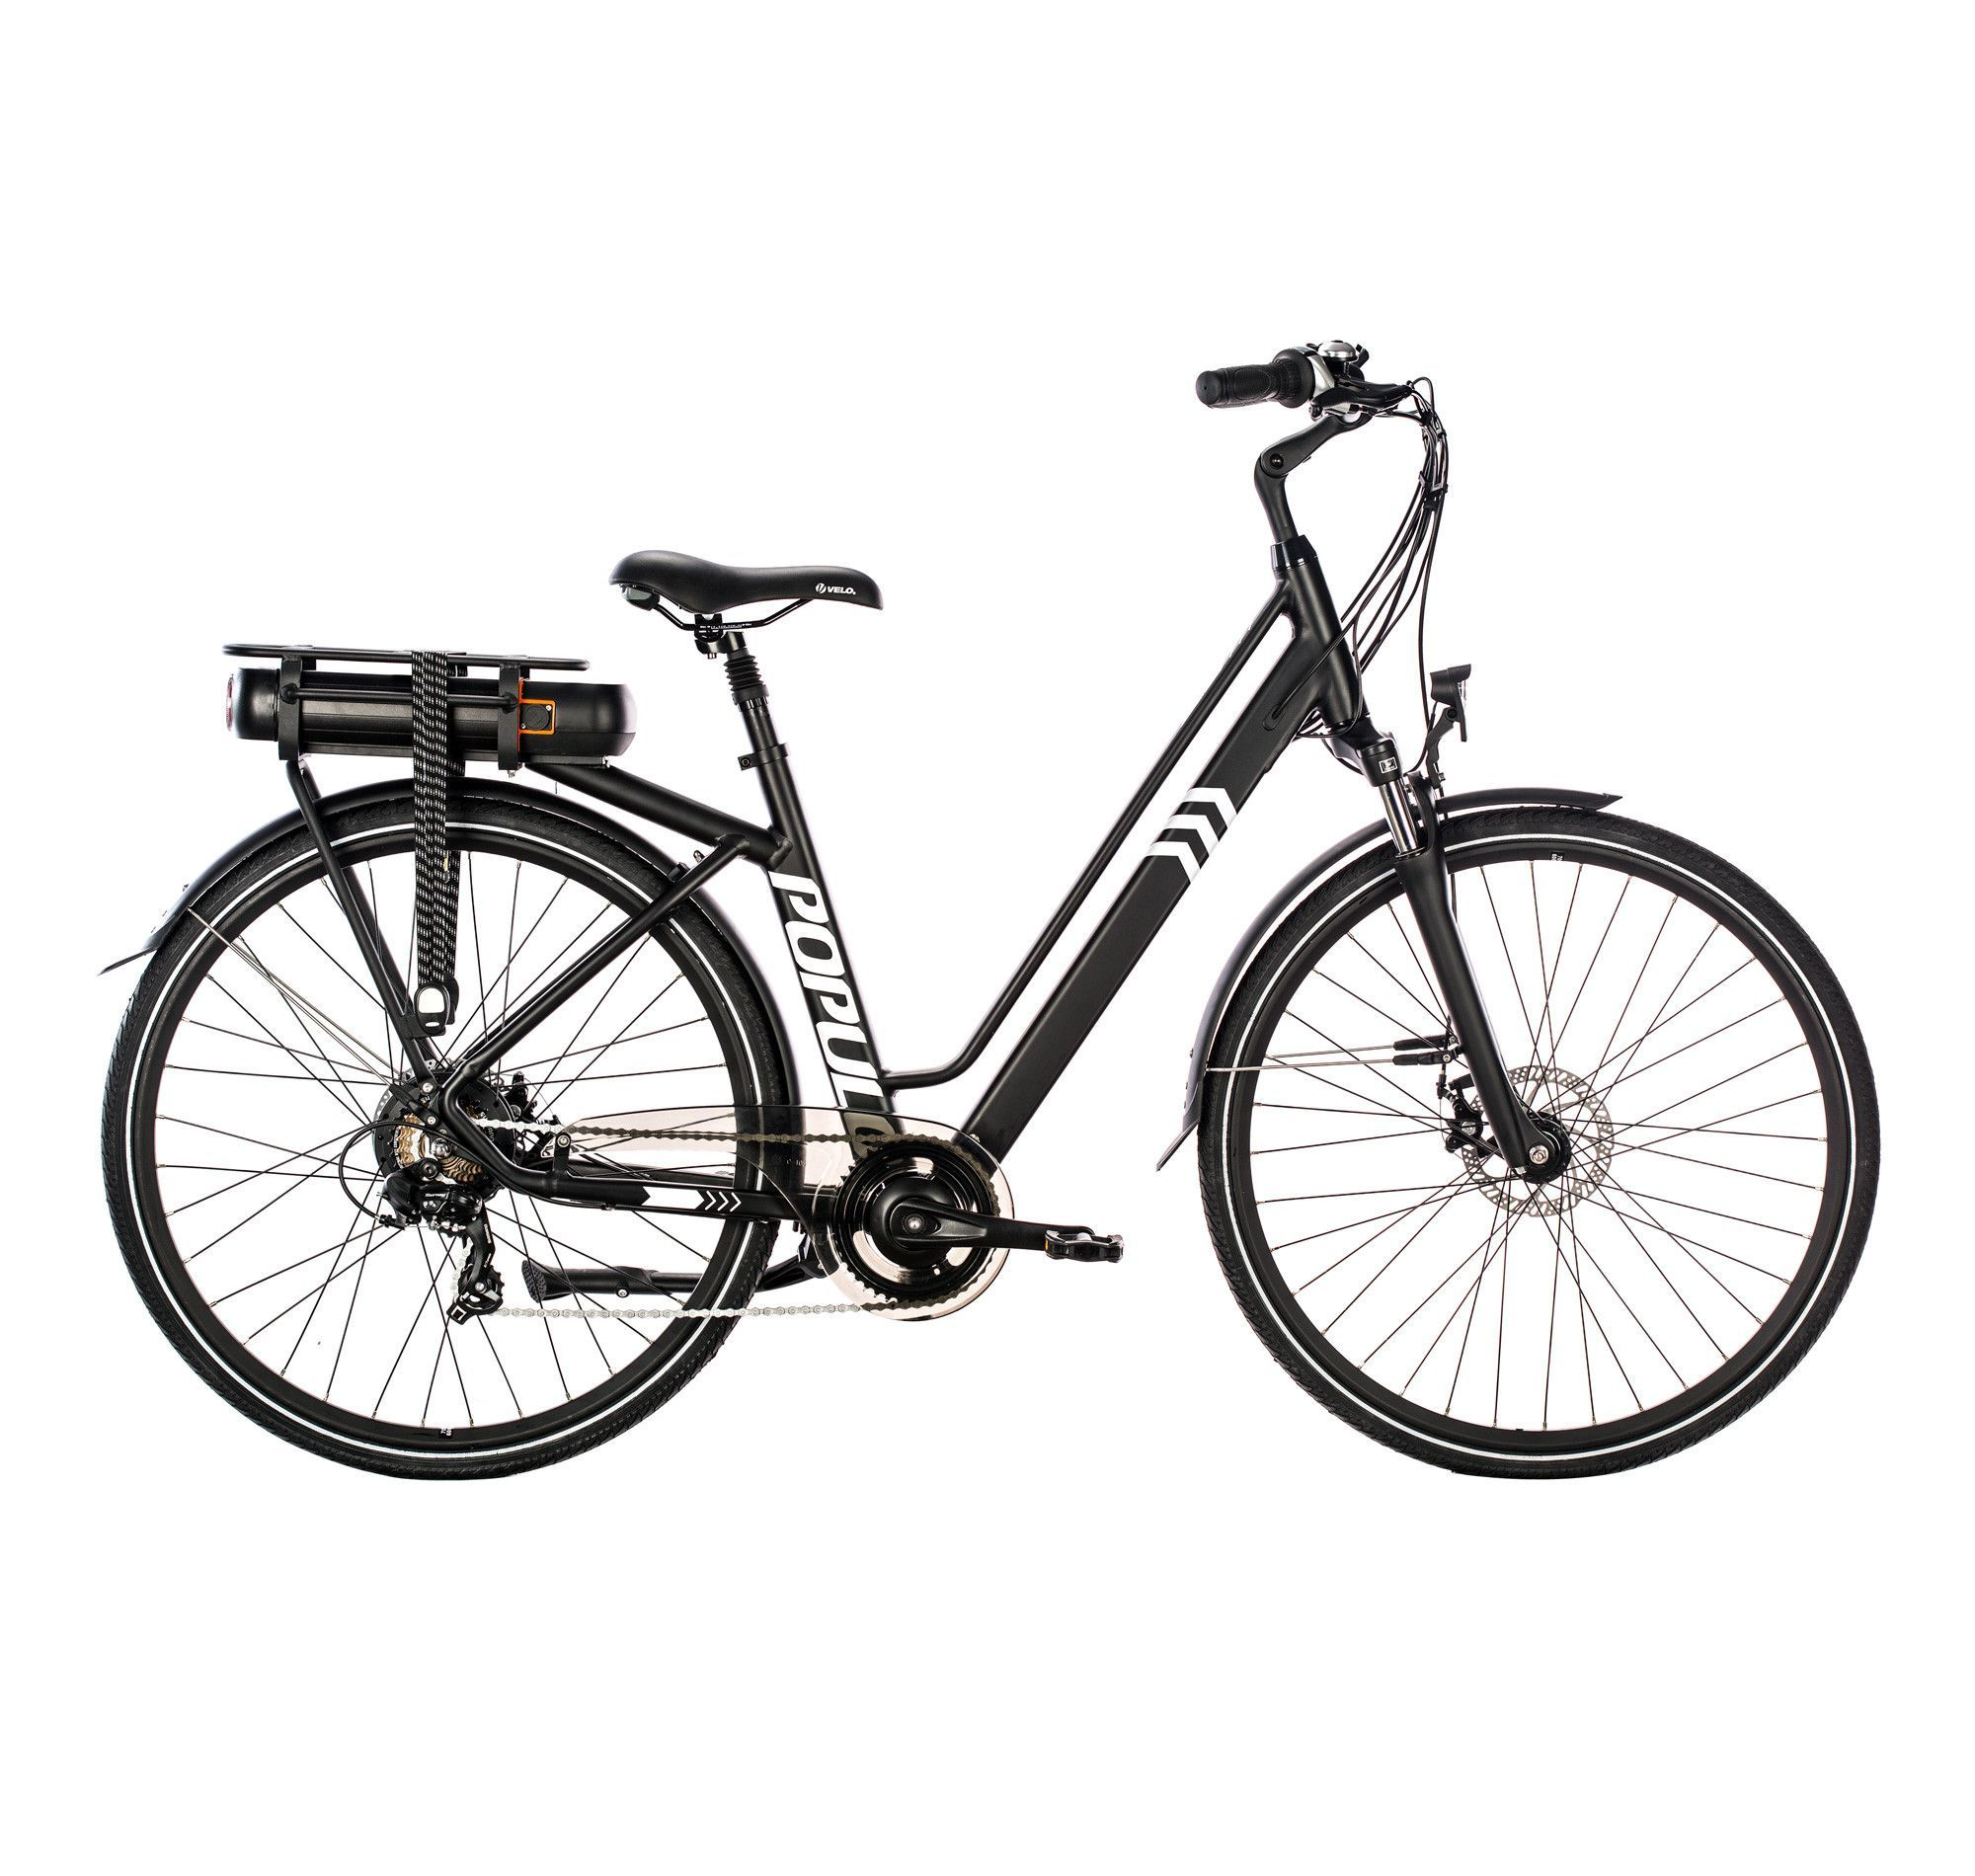 Populo Lift V1 Electric Bicycle Electric Bicycle City Bike Electric Bike